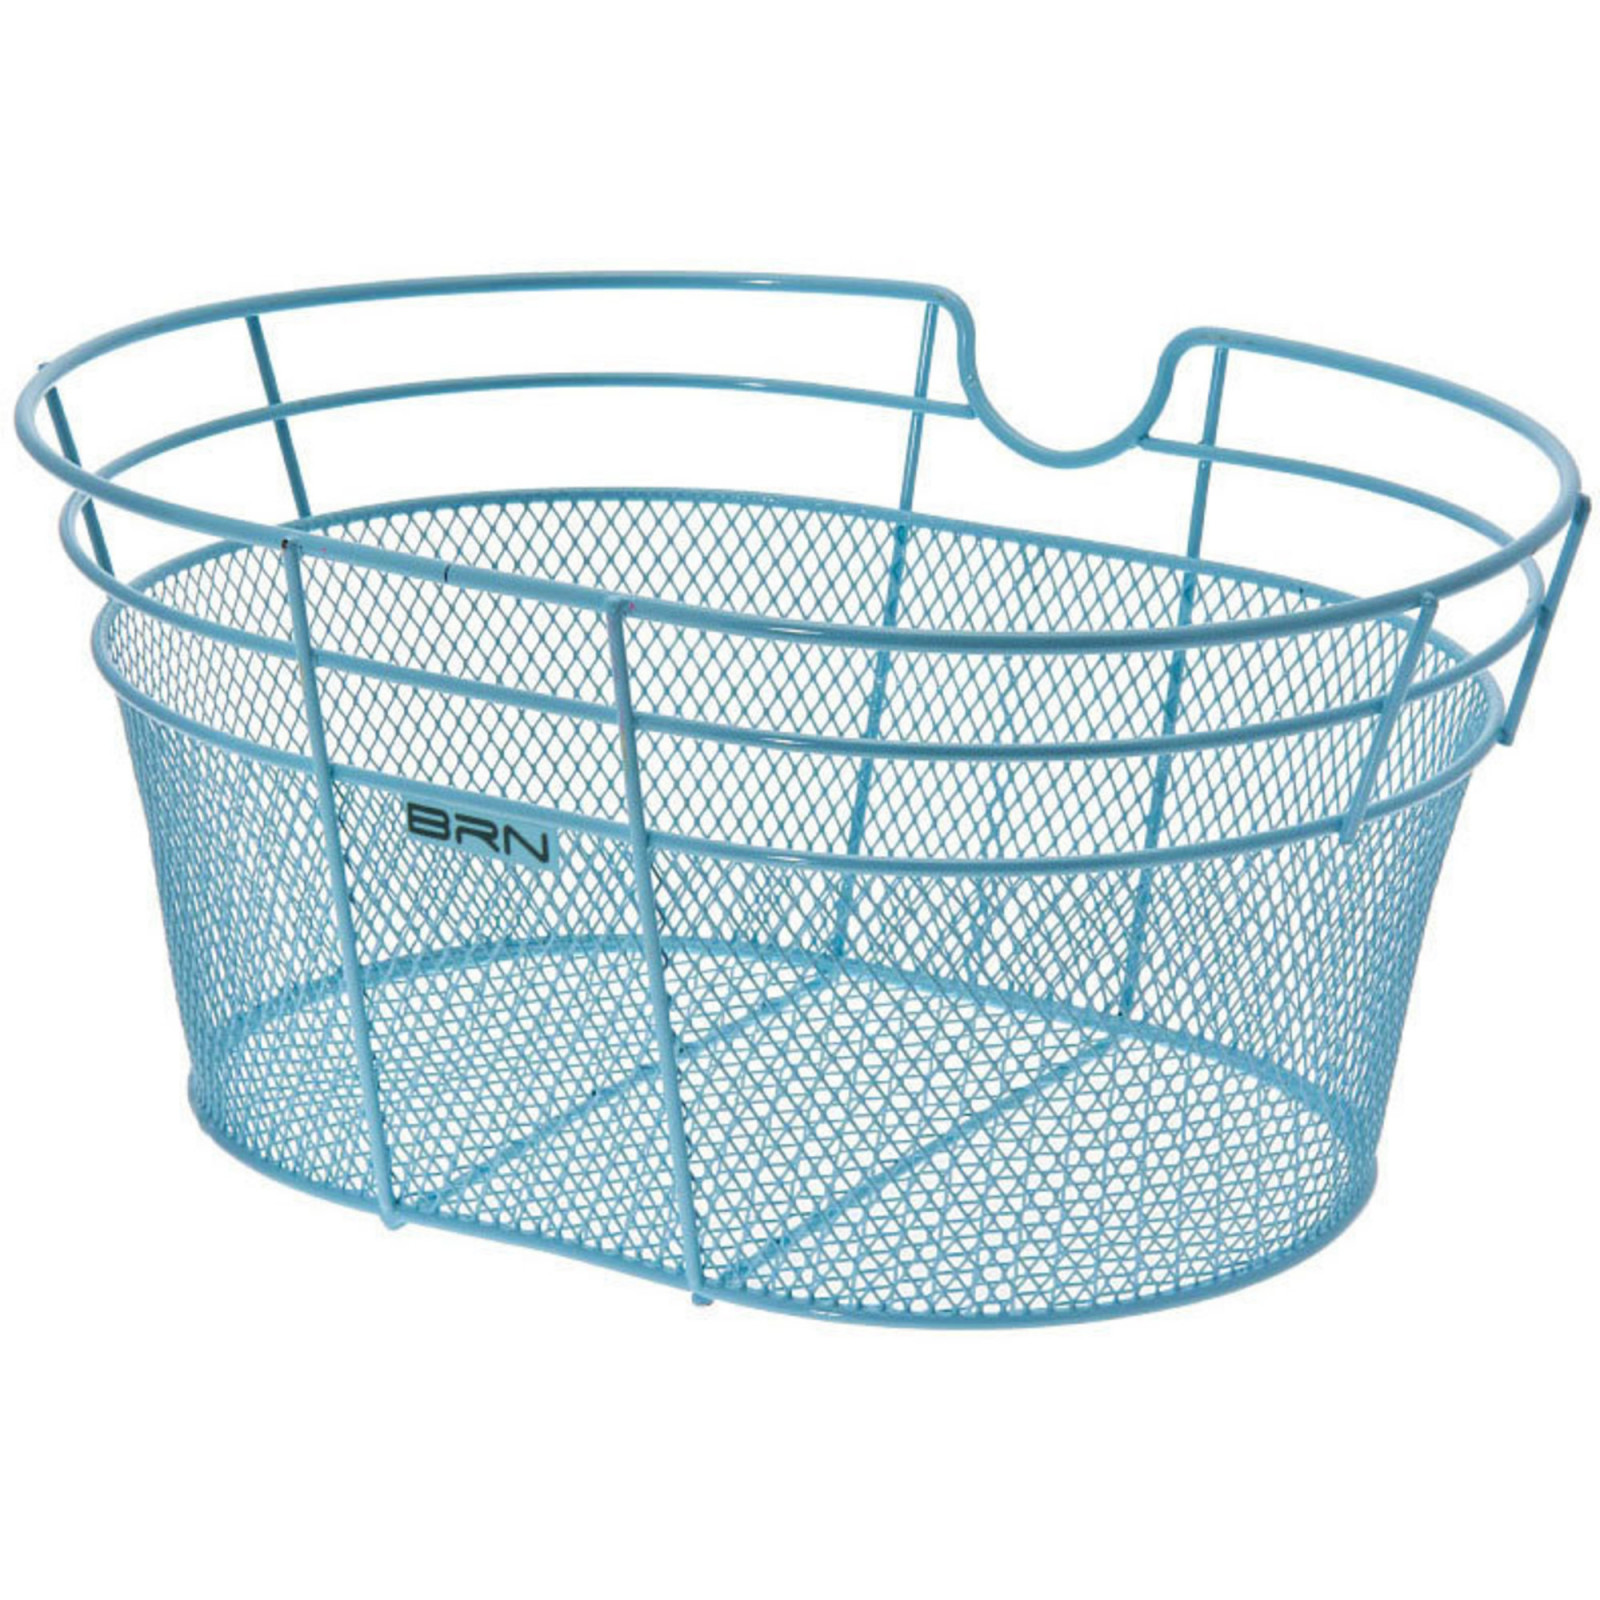 FANTASY METALLIC FRONT BICYCLE BASKET – IN COLOR LIGHT BLUE